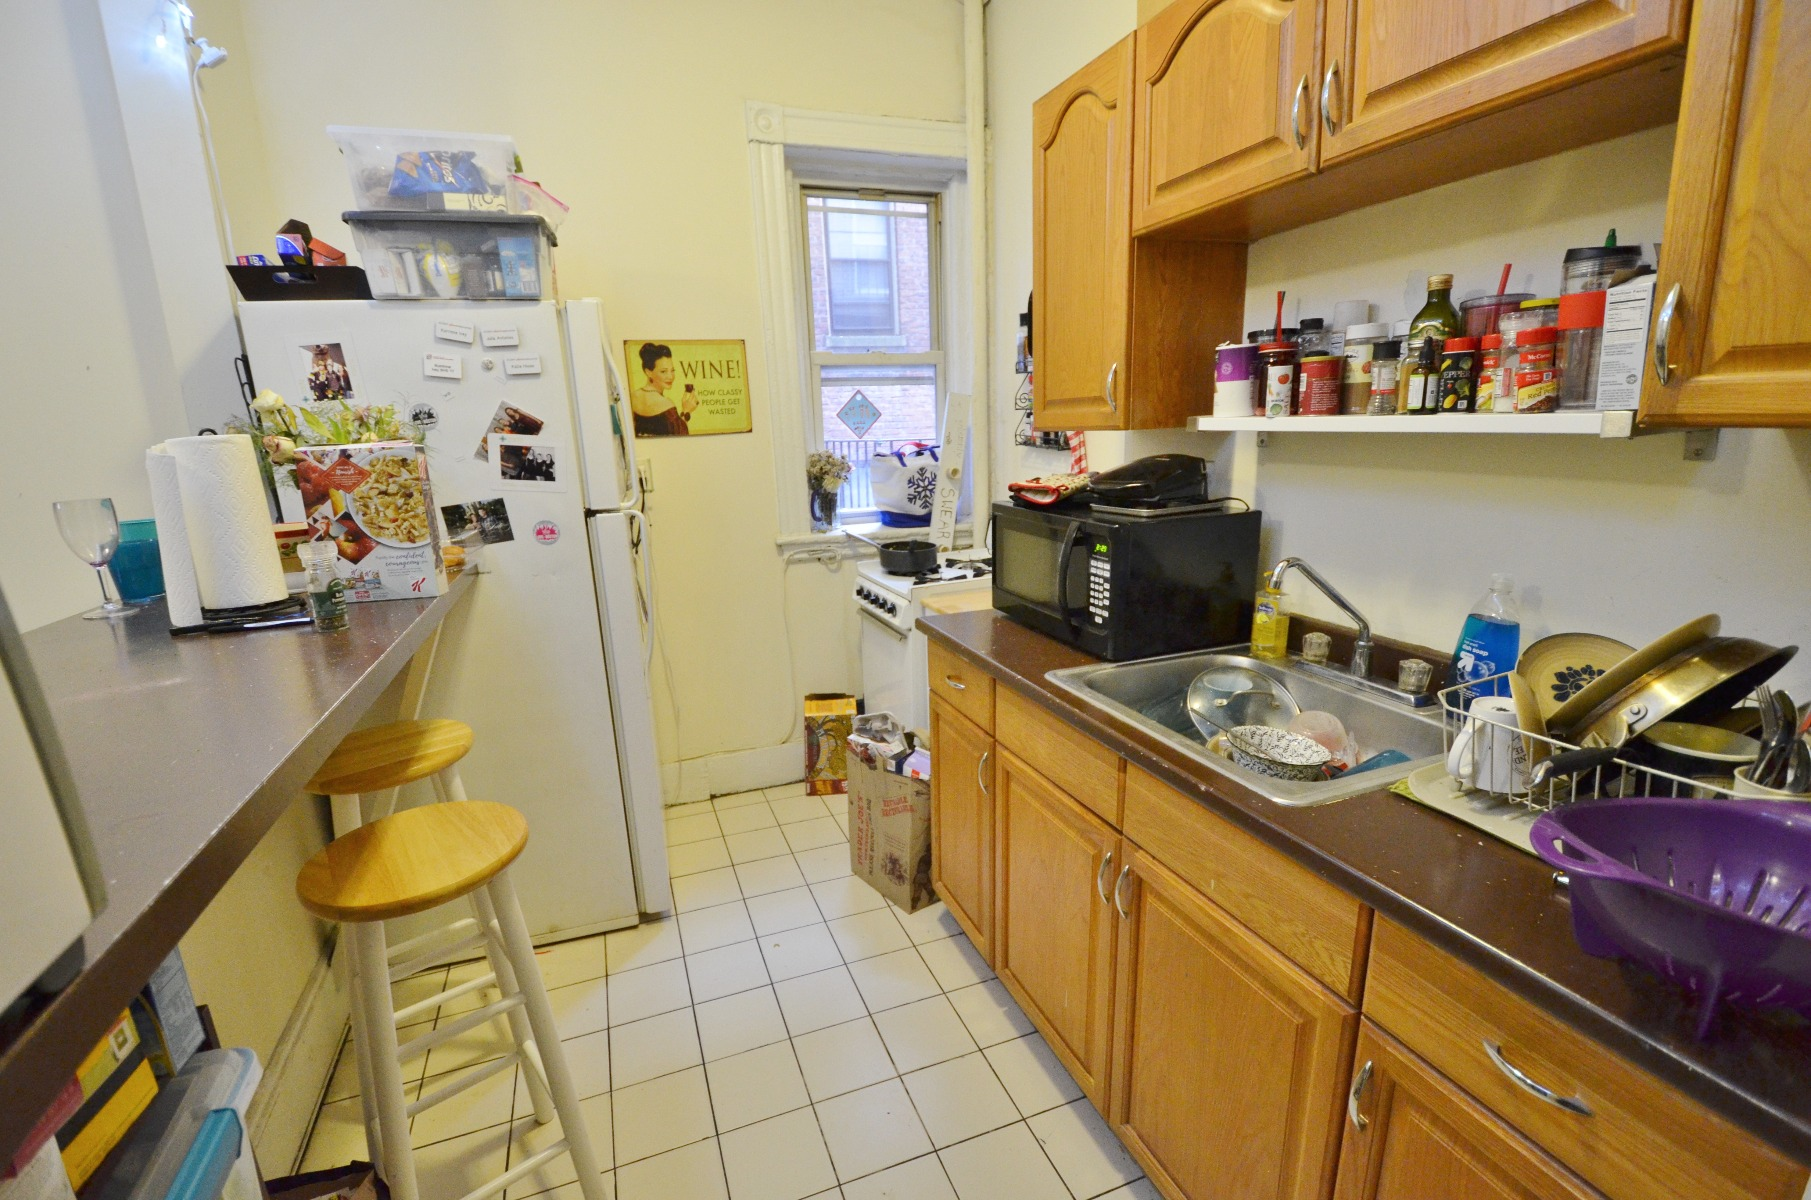 Avail 9/1 - Incredible, Roomy 2 BR Split on Peterborough St